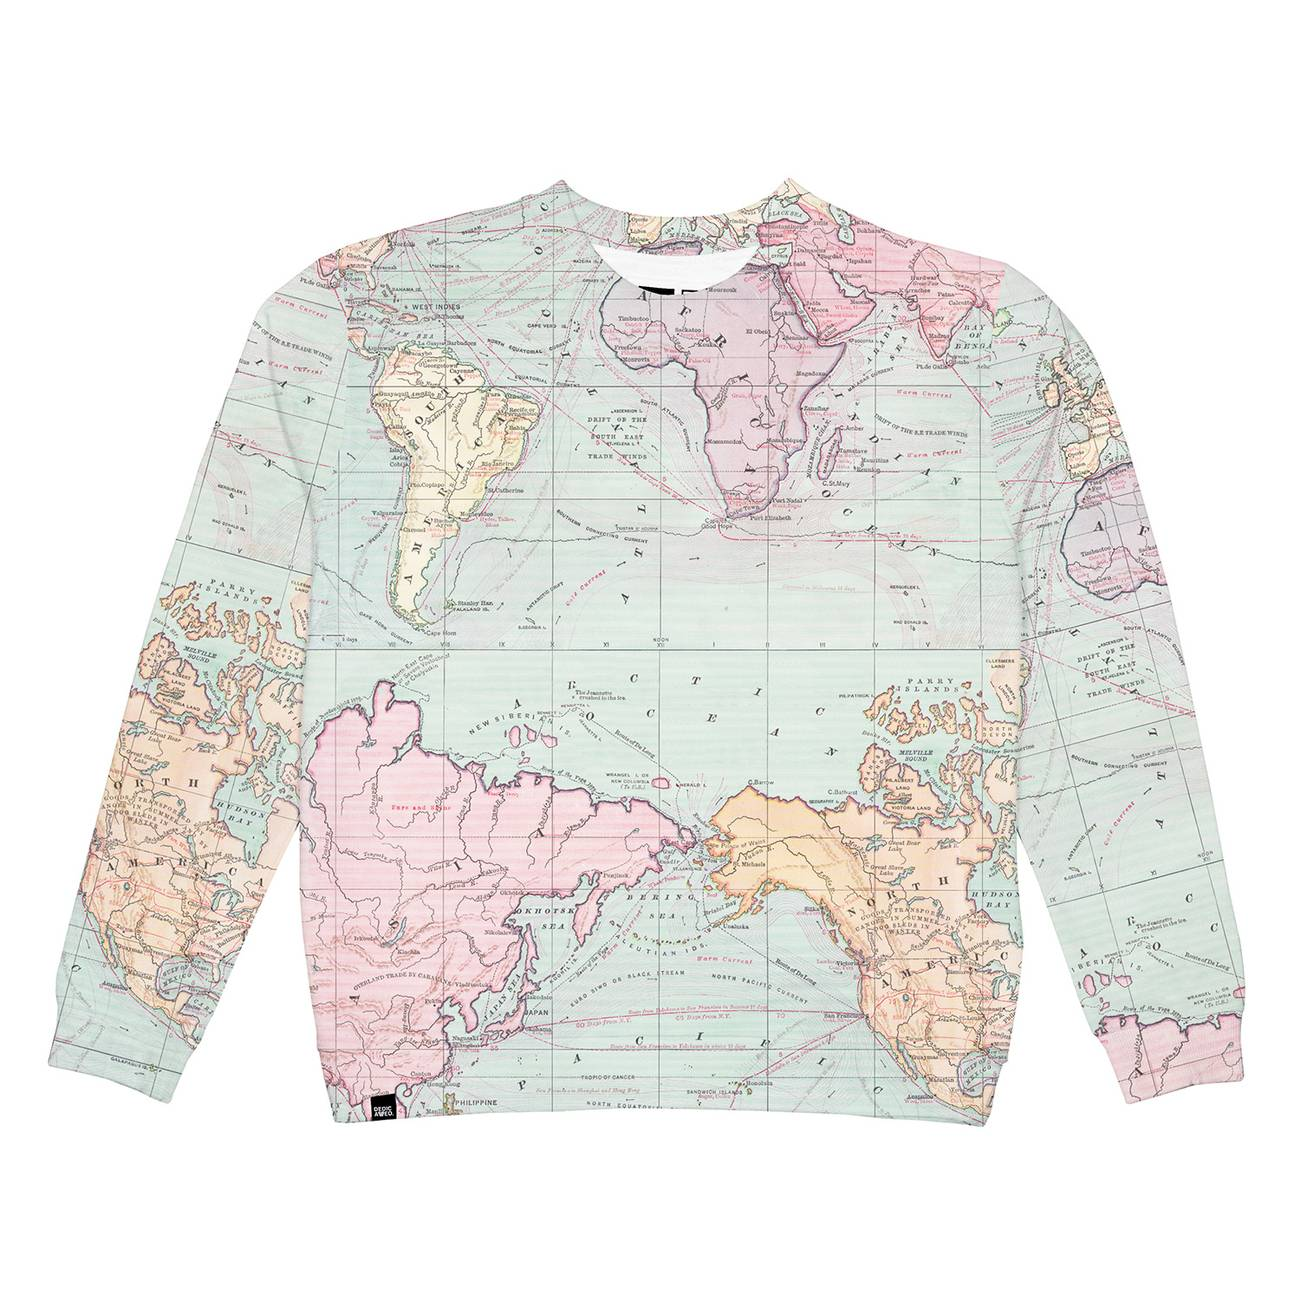 Sweatshirt Ystad Map Multi Color